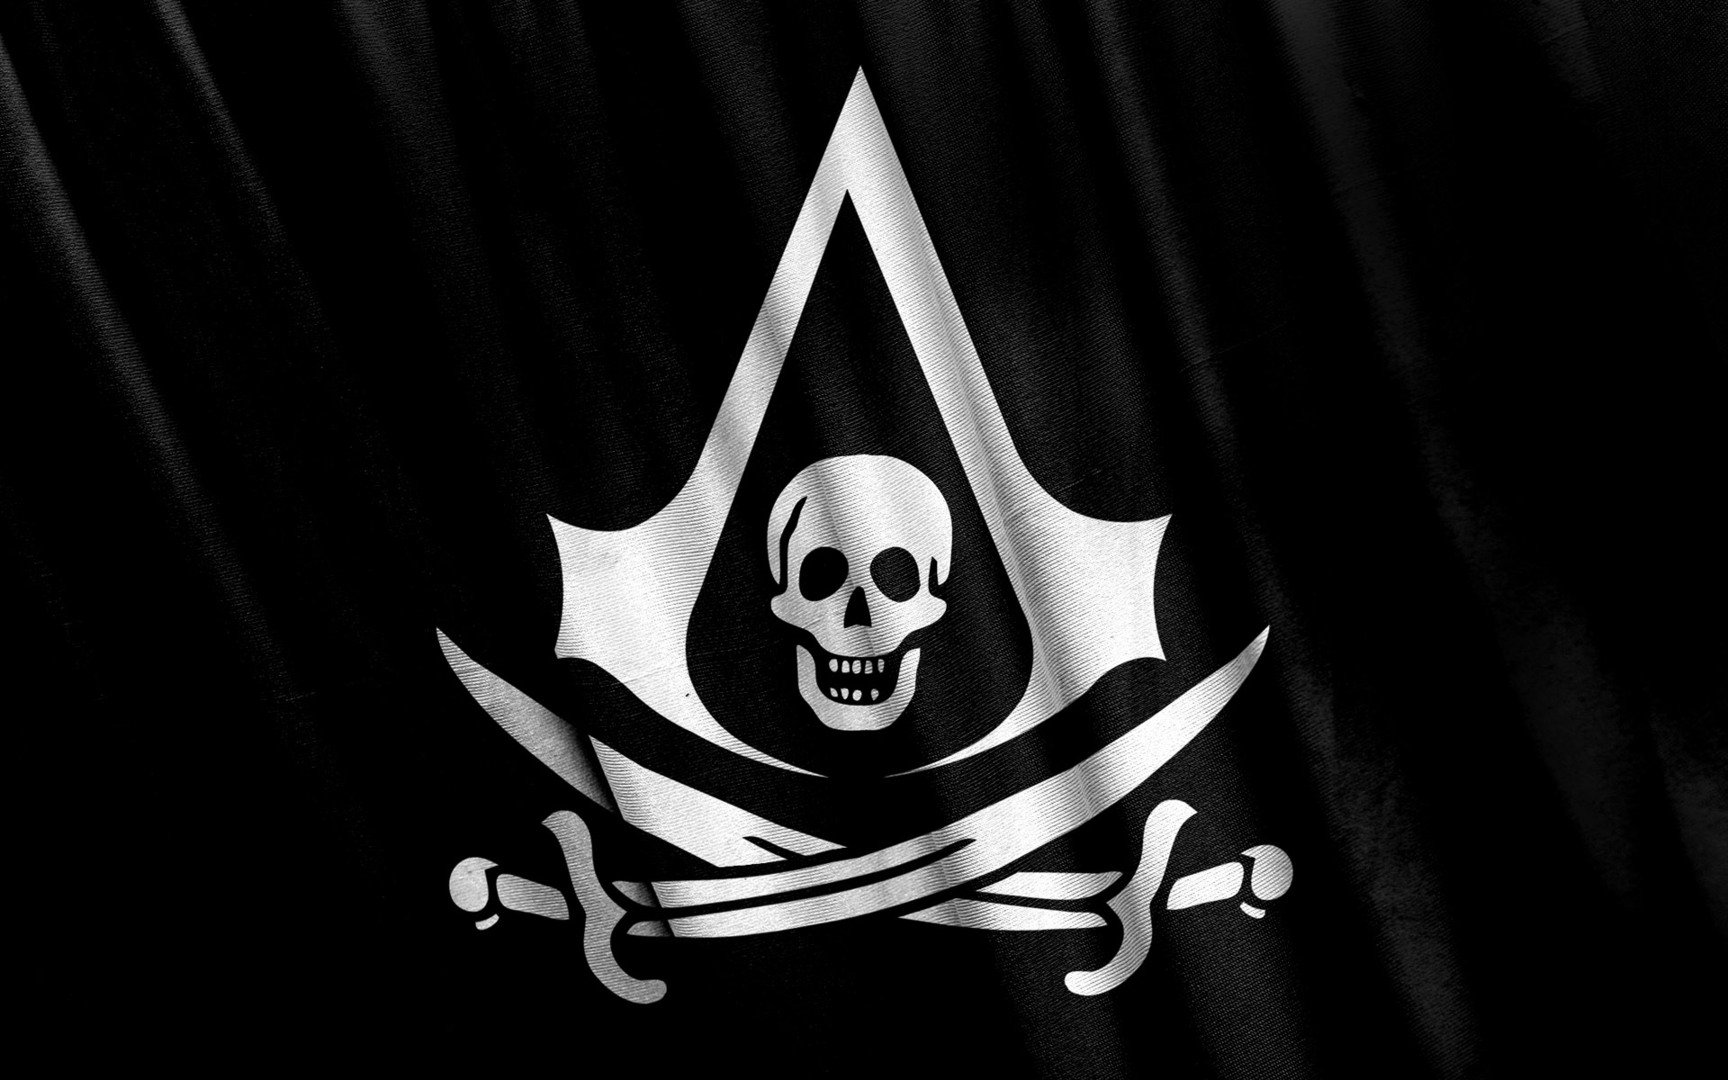 ASSASSINS CREED - Black Flag Pirate Wallpaper